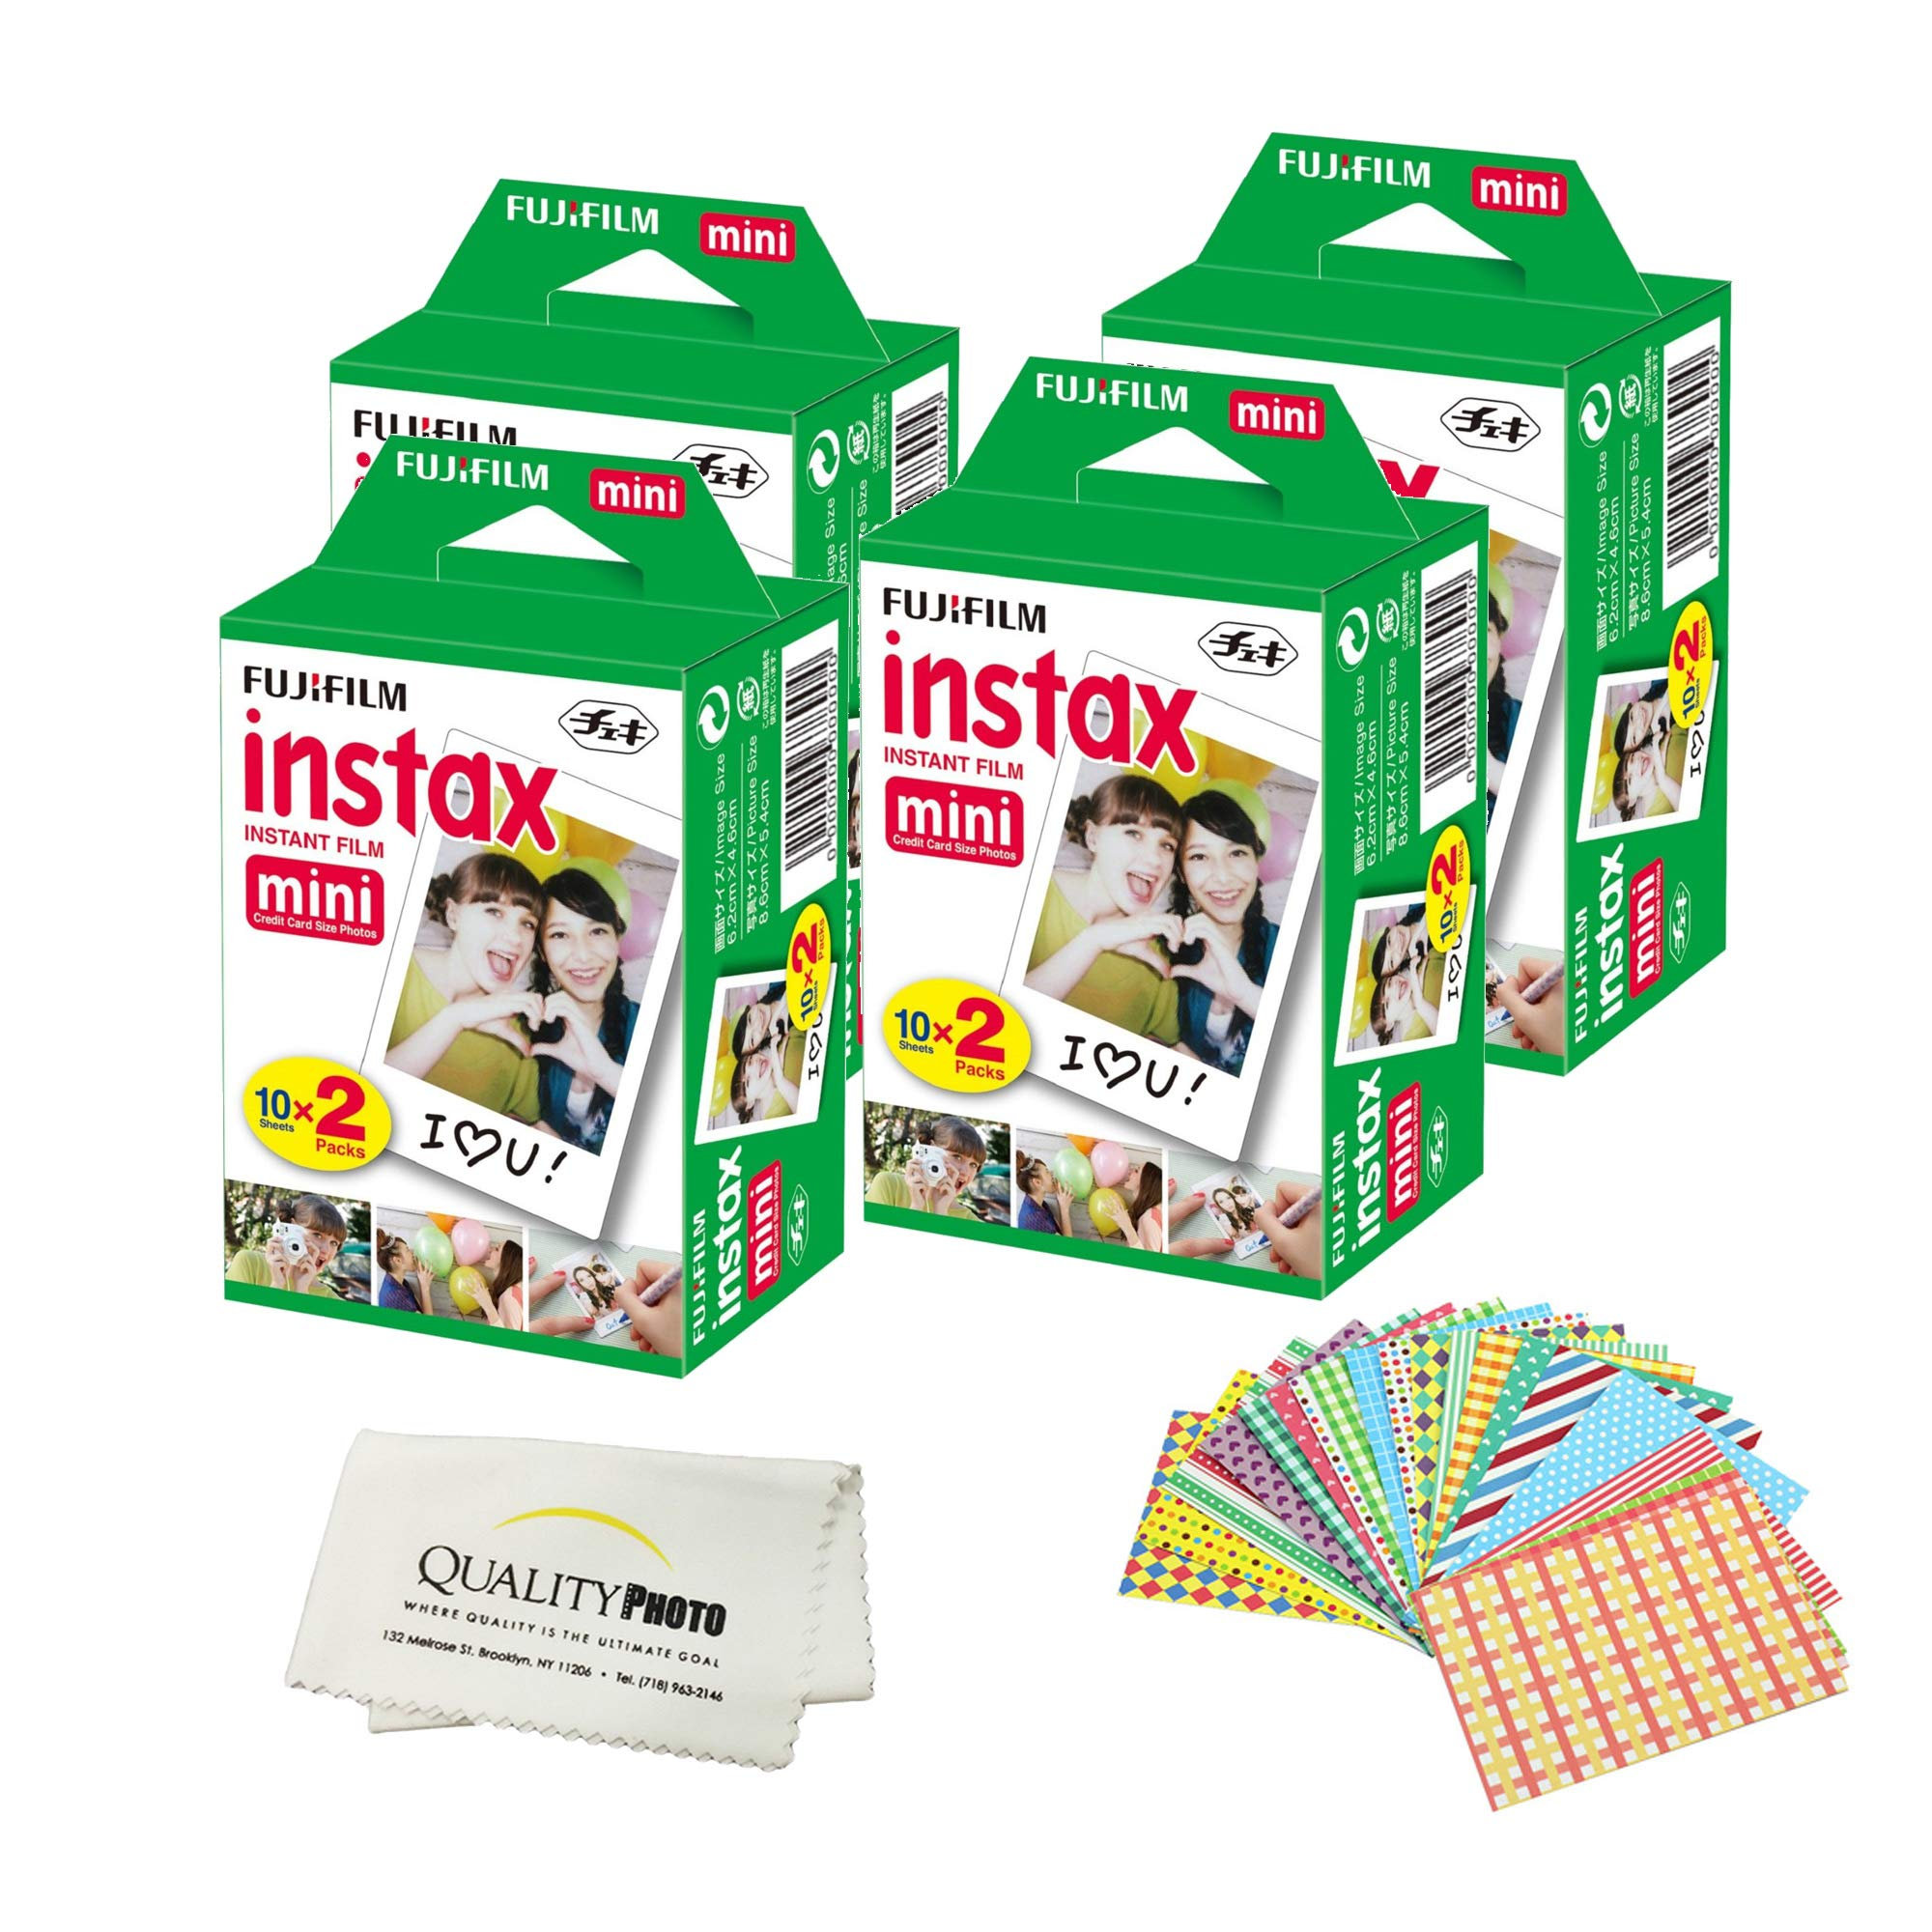 Fujifilm INSTAX Mini Instant Film - 80 Sheets - (White) for Fujifilm Instax Mini 8 & Mini 9 Cameras + Frame Stickers and Microfiber Cloth Accessories ... by Quality photo